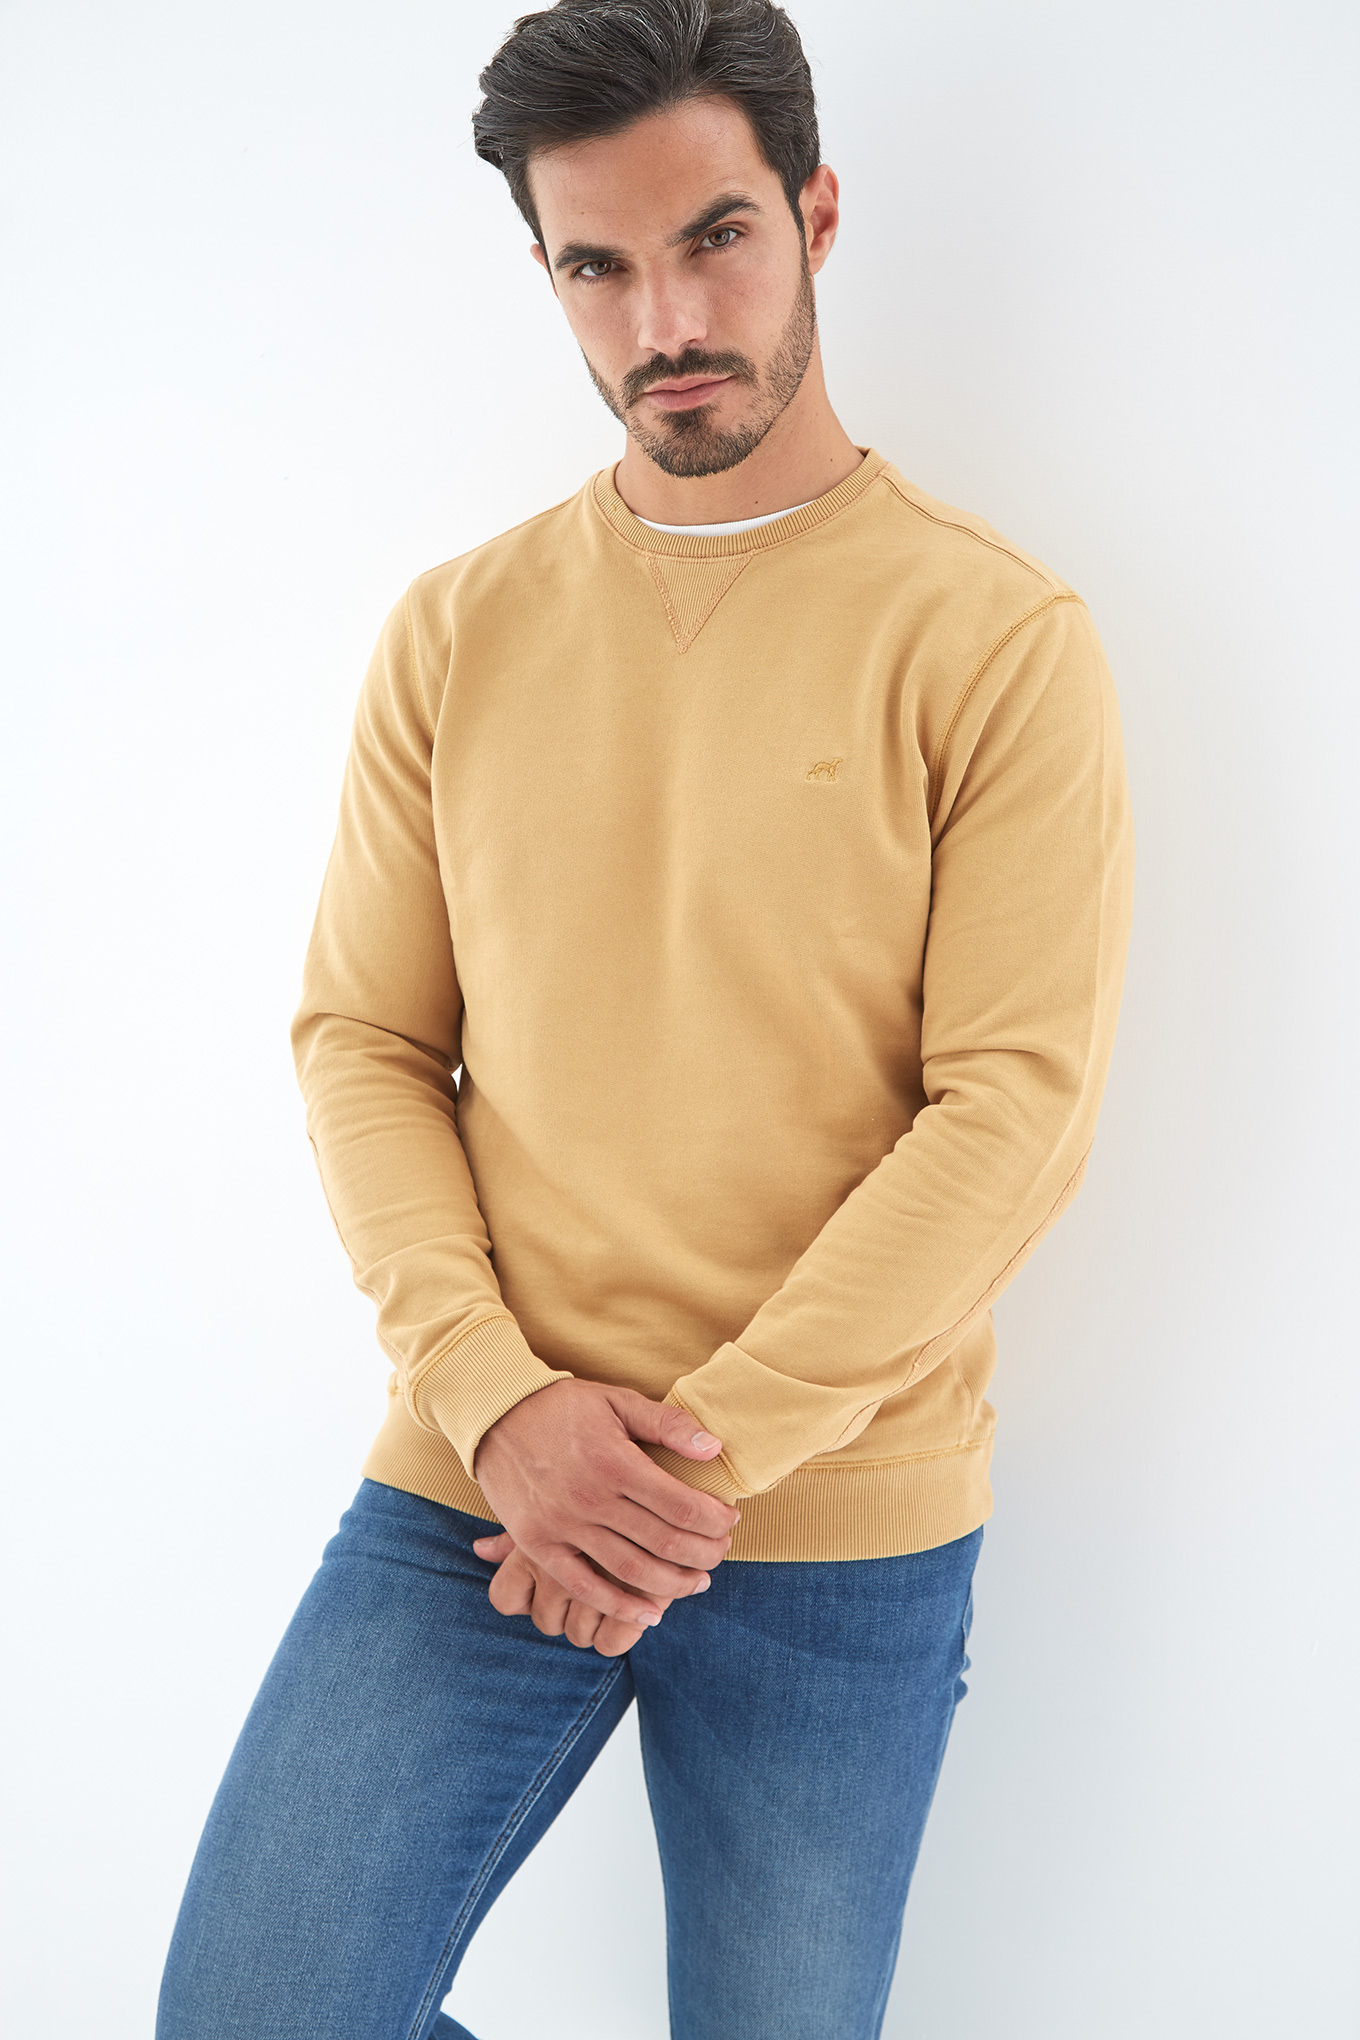 Sweatshirt Yellow Sport Man